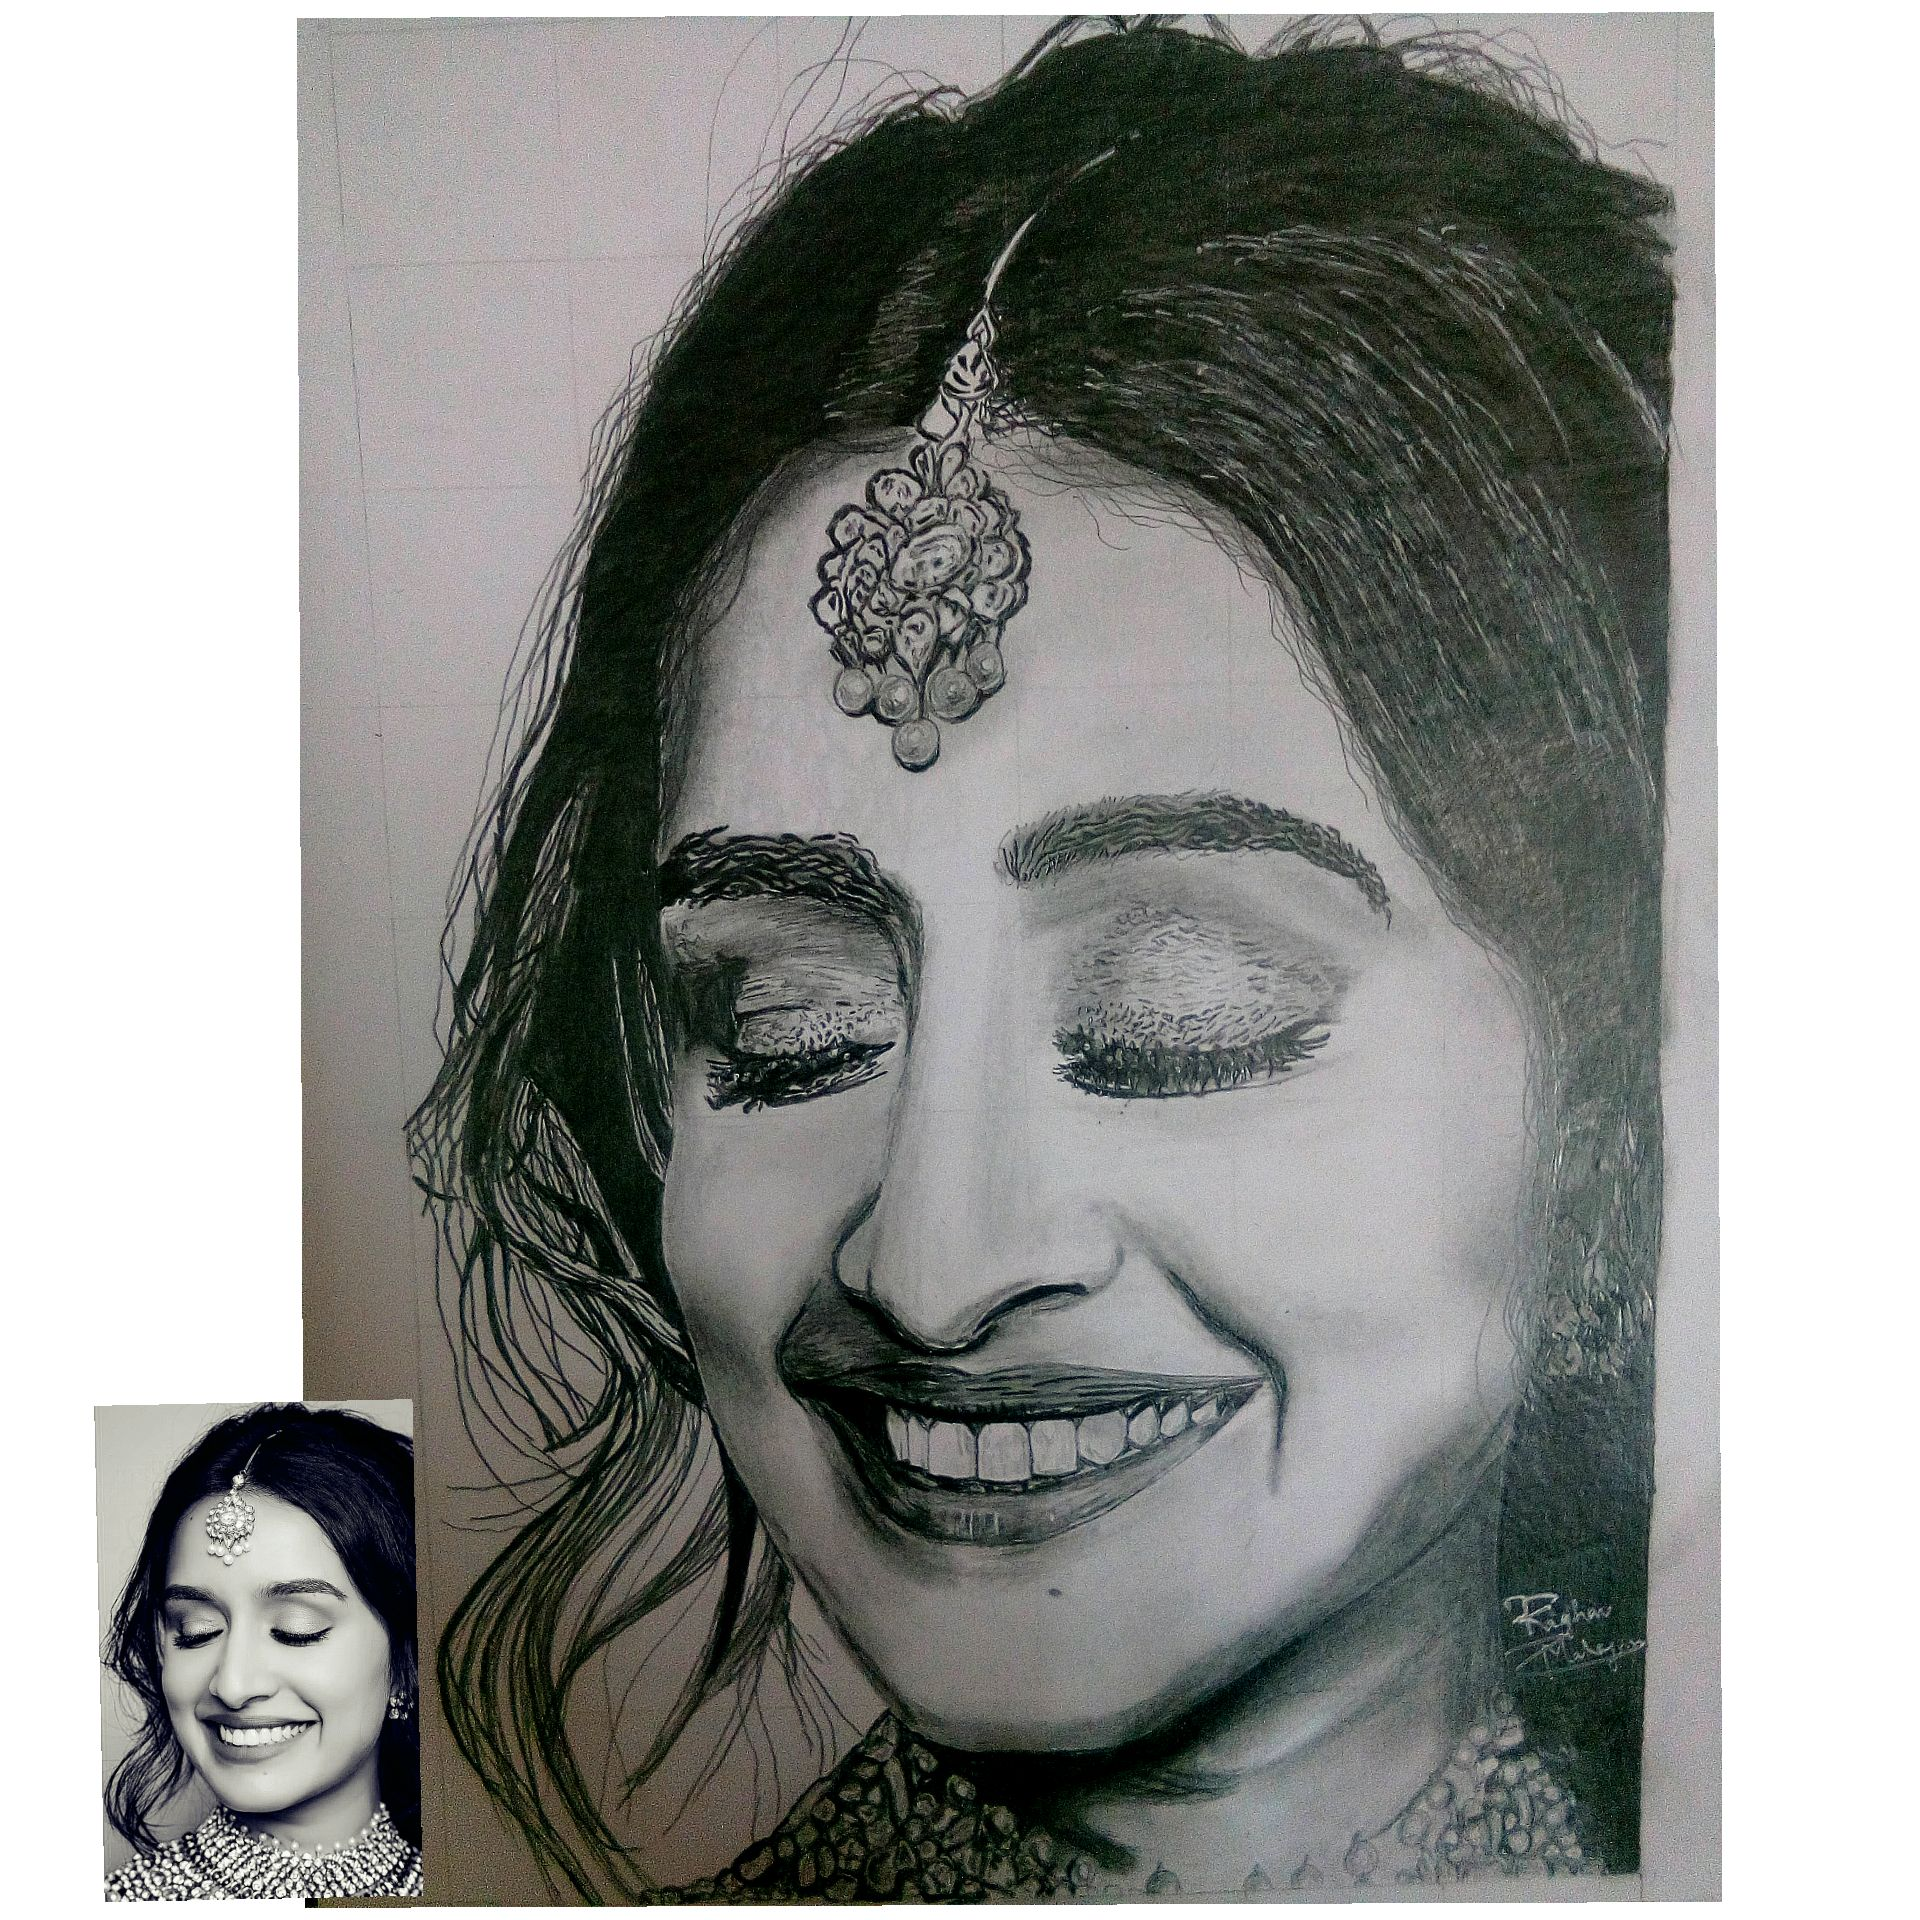 Pin by Sanjana lama on Exercise in 2020 | Portrait, Crayon ...